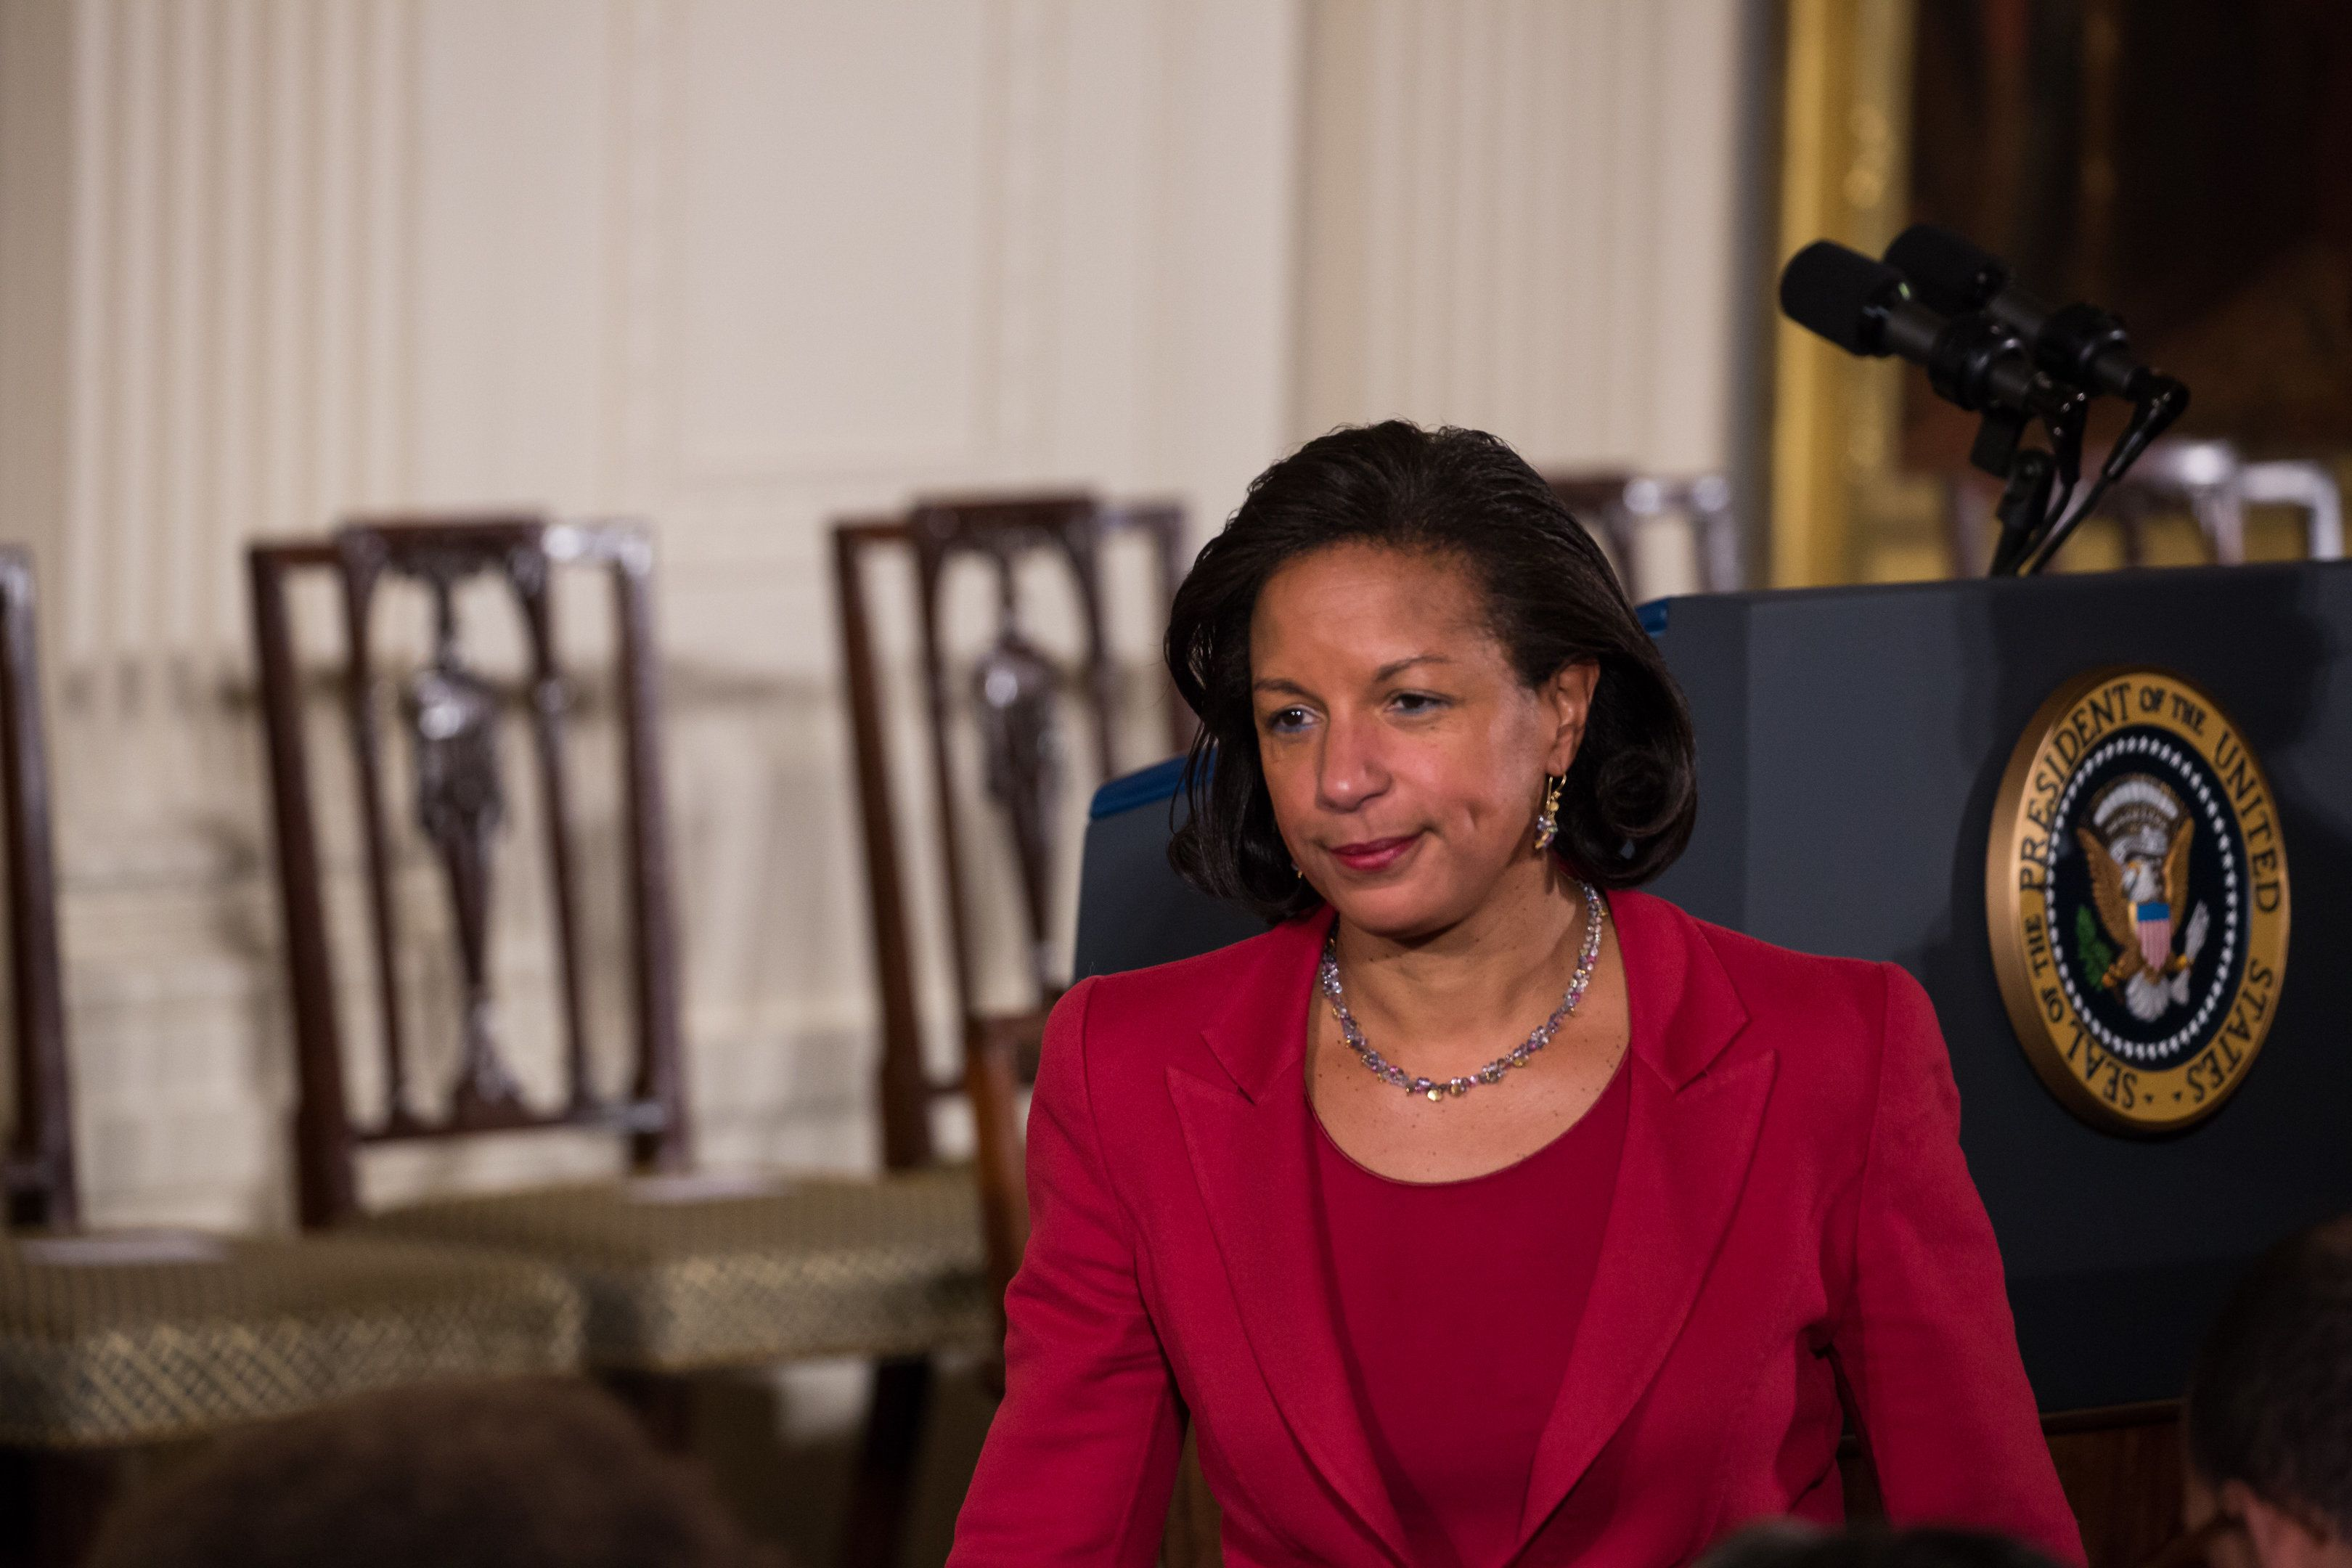 Ambassador Susan E. Rice, President Barack Obama's National Security Advisor, was a guest at the Presidential Medal of Freedom ceremony. (Photo by Cheriss May/NurPhoto via Getty Images)